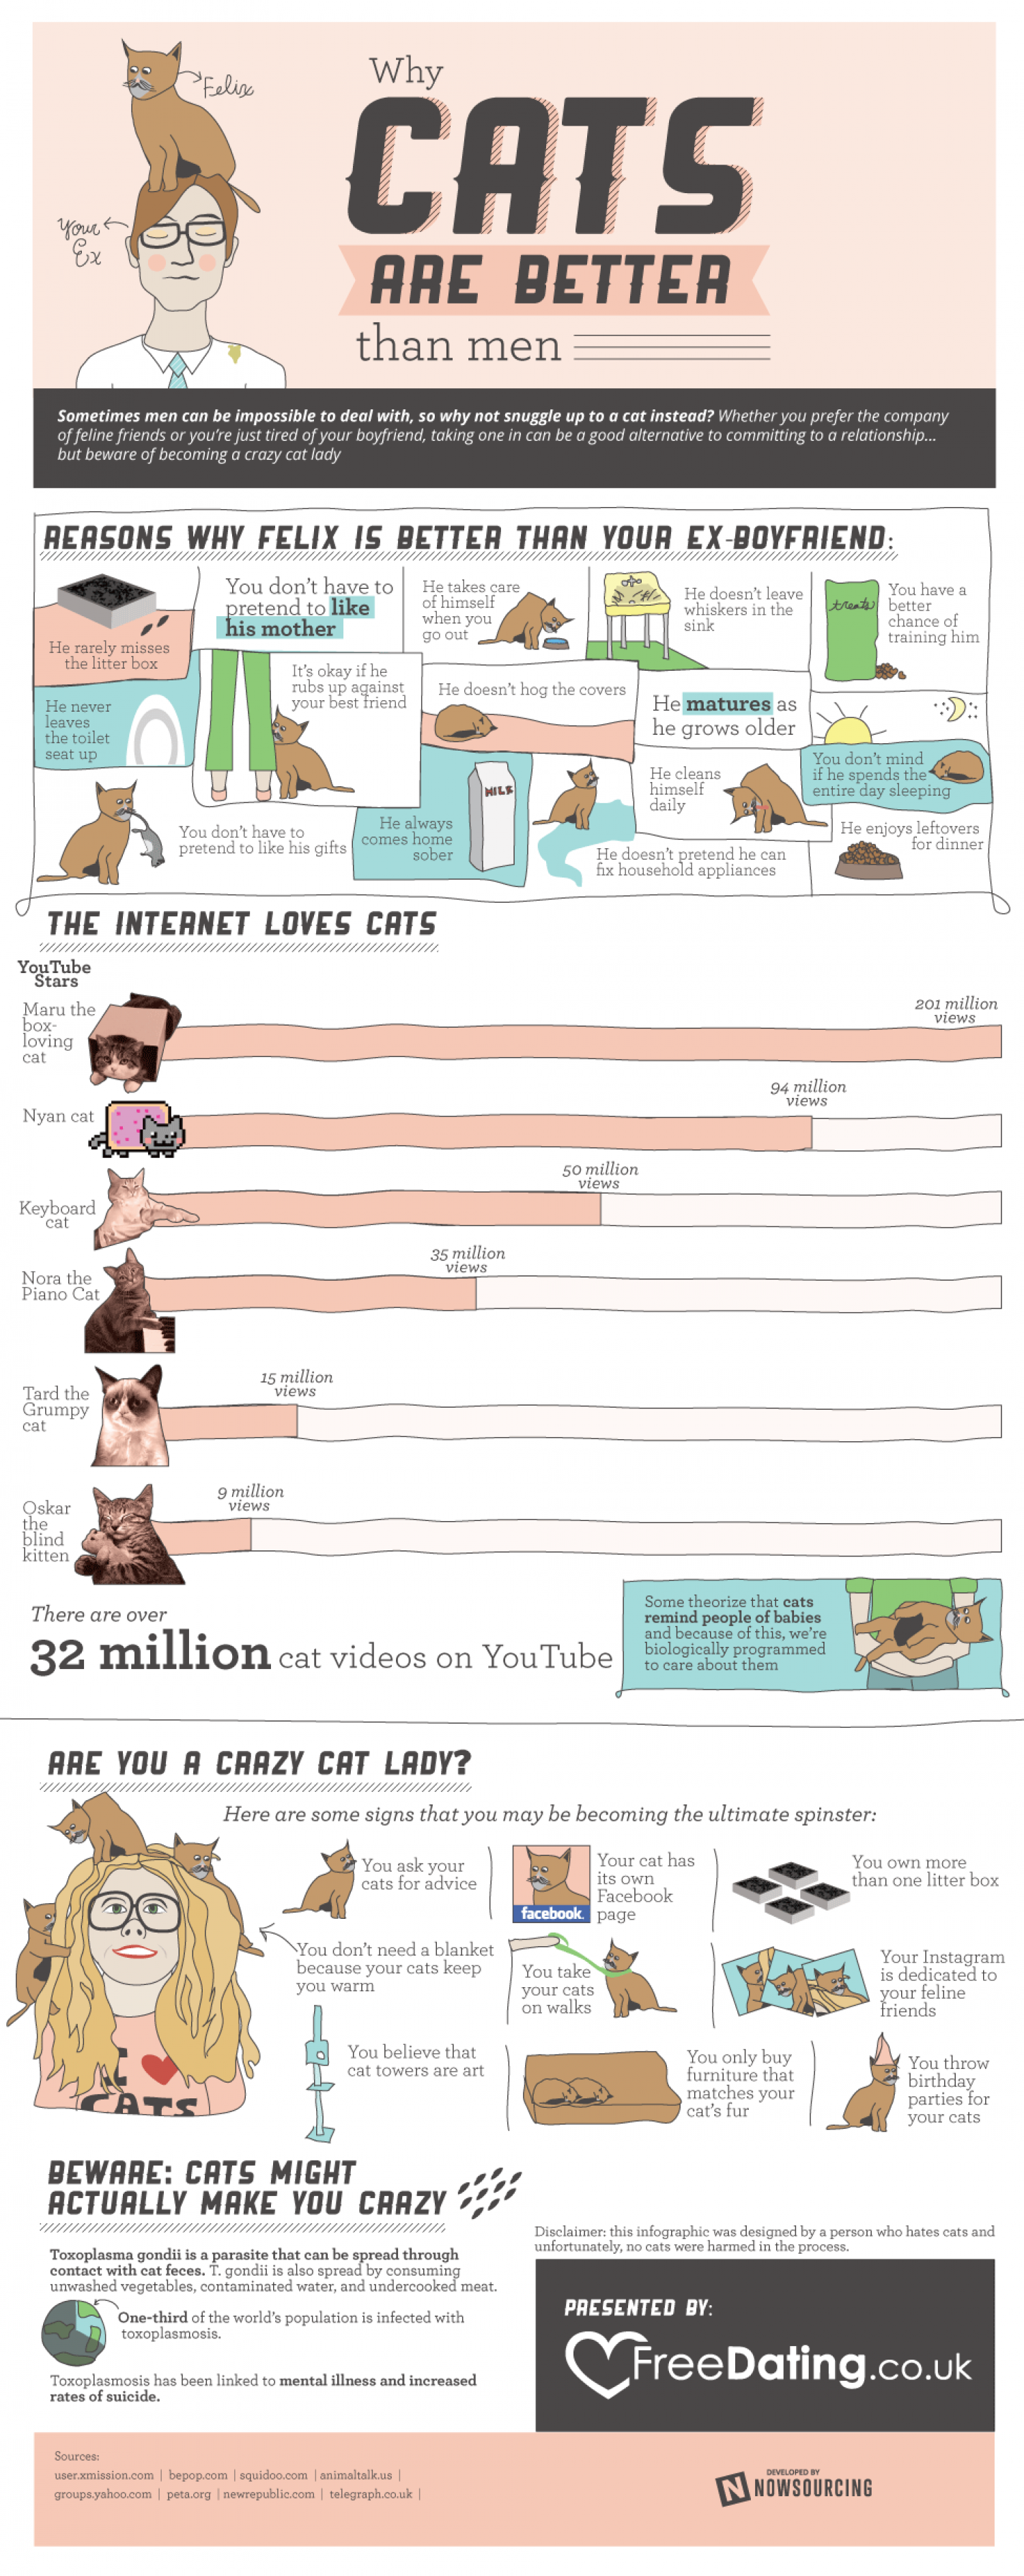 Why Cats are Better than Men Infographic